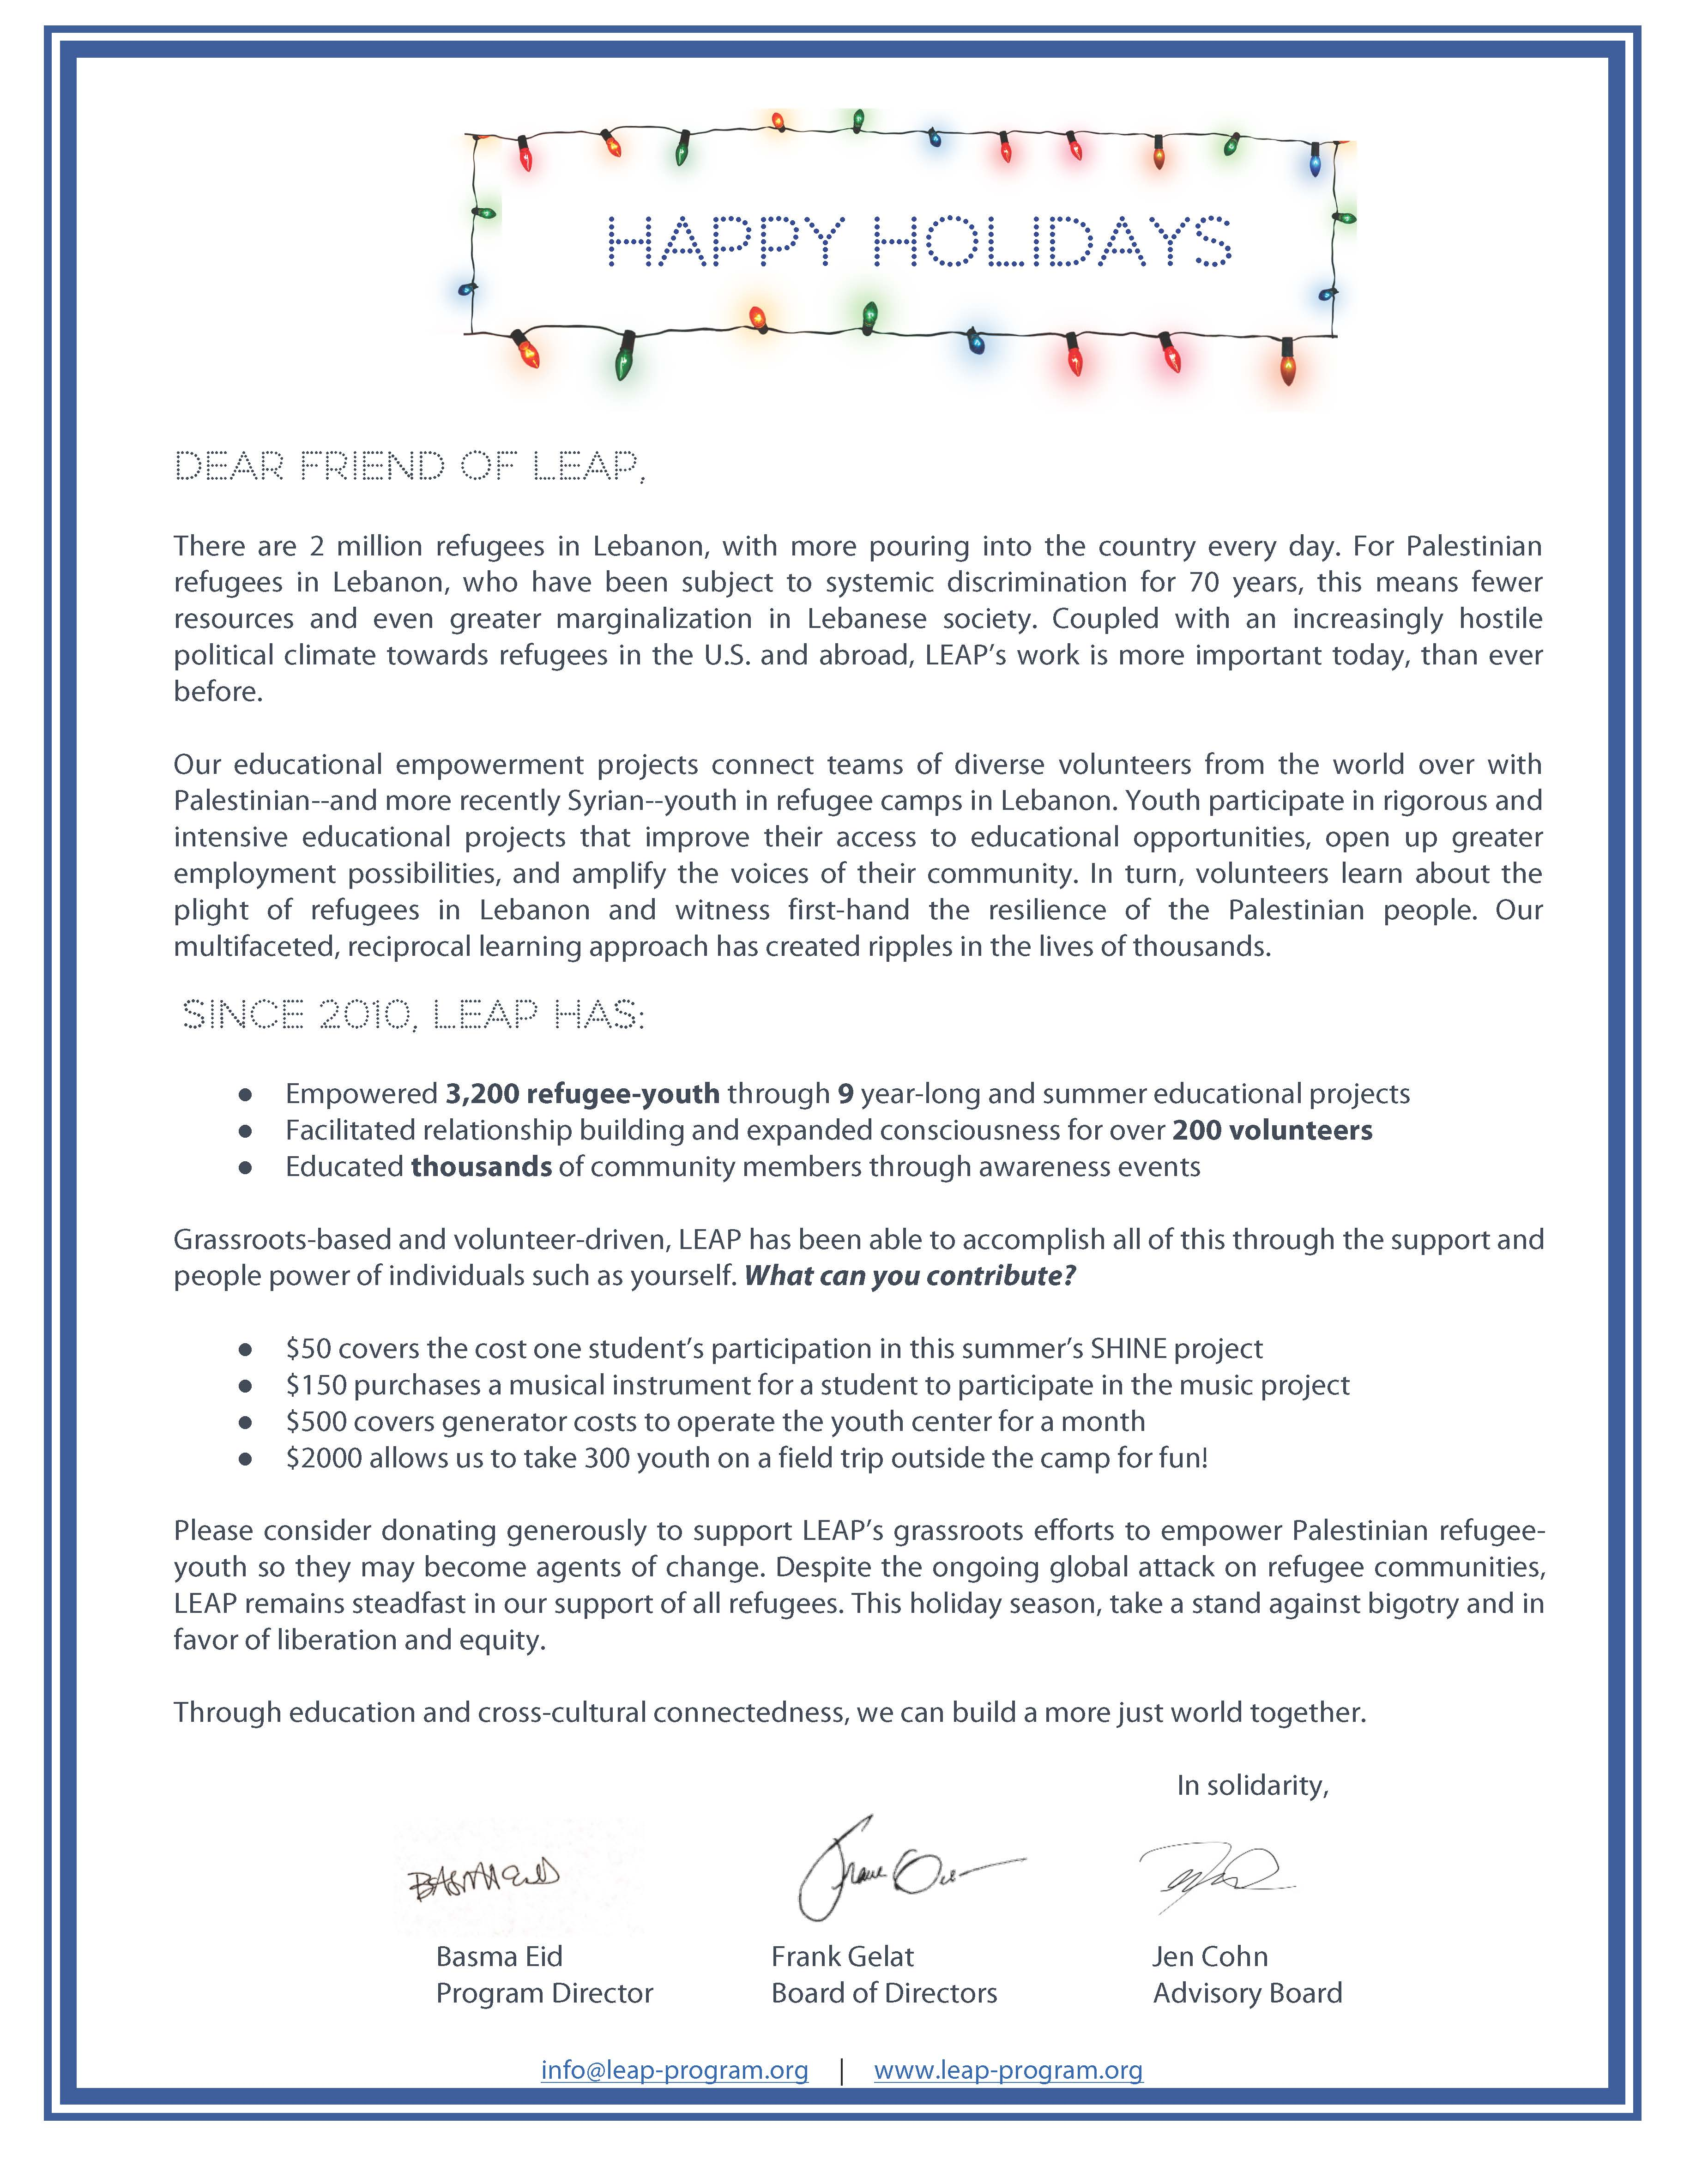 Holiday Fundraising Letter – Final_Page_1